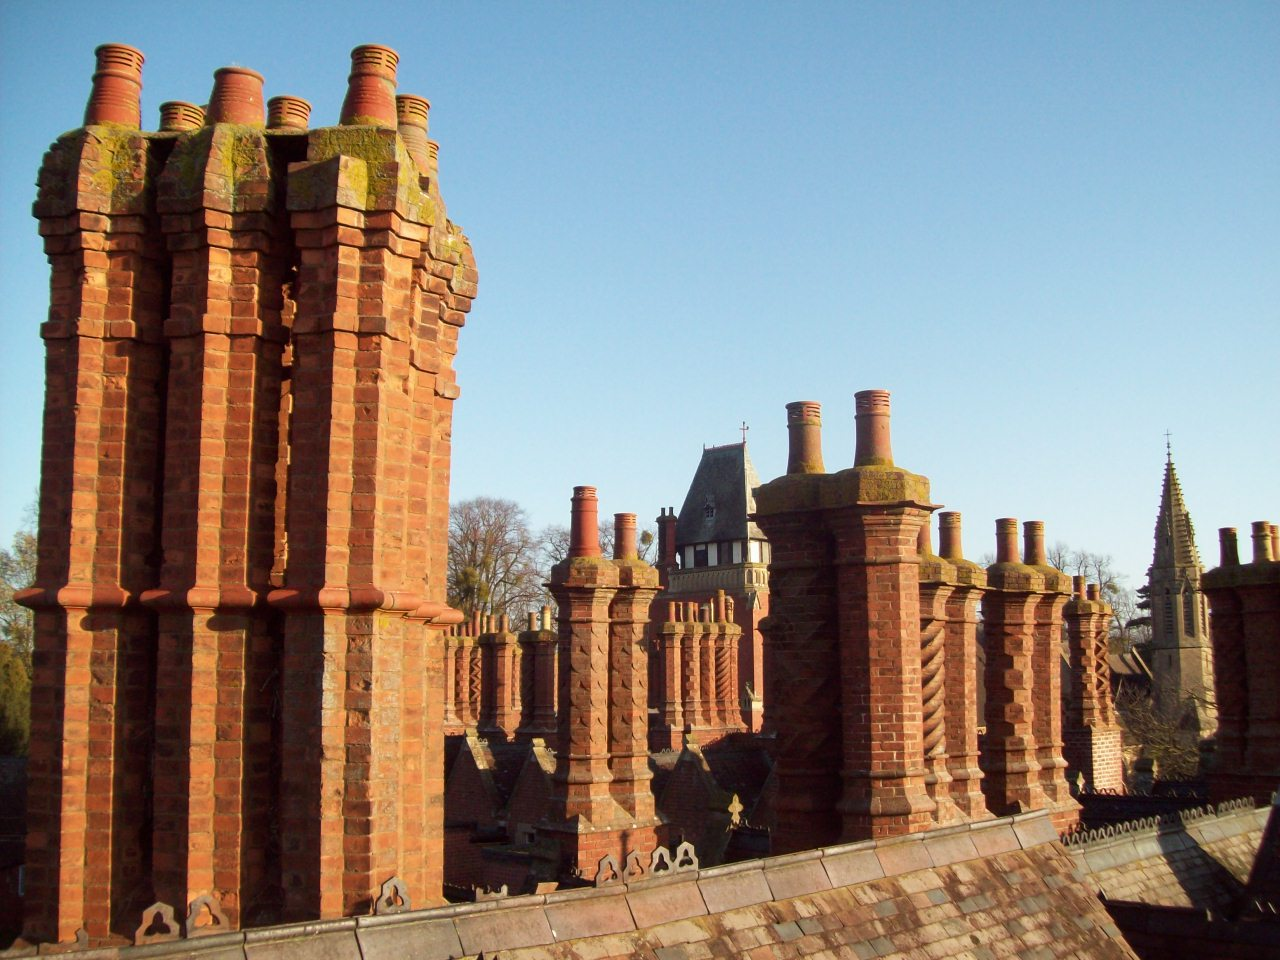 The famous 'Barley Sugar' chimneys